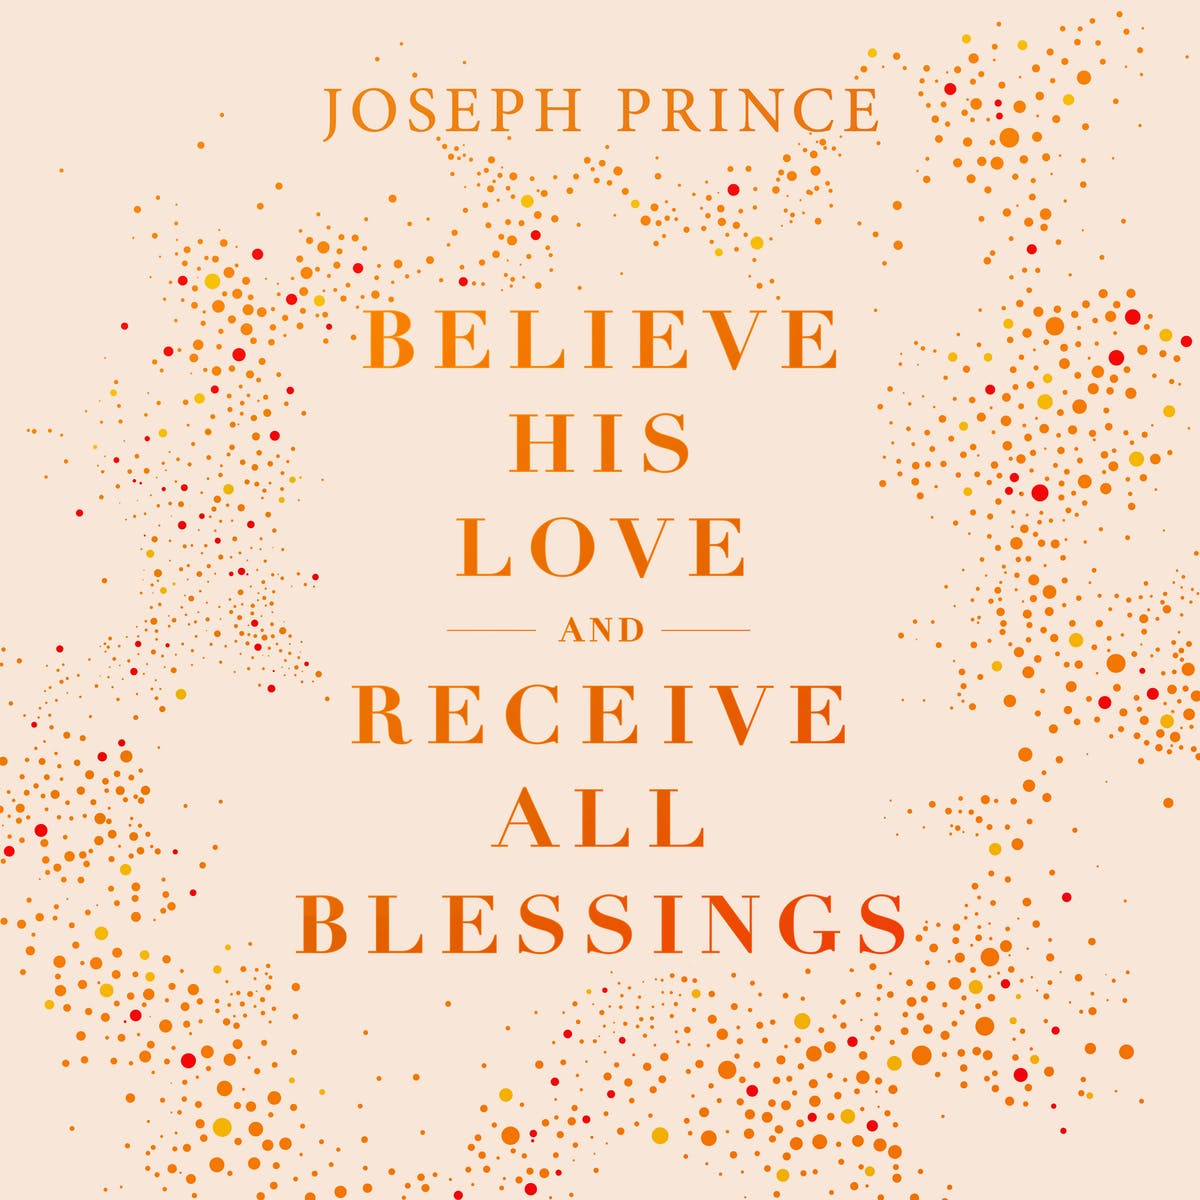 Believe His Love And Receive All Blessings | Official Joseph